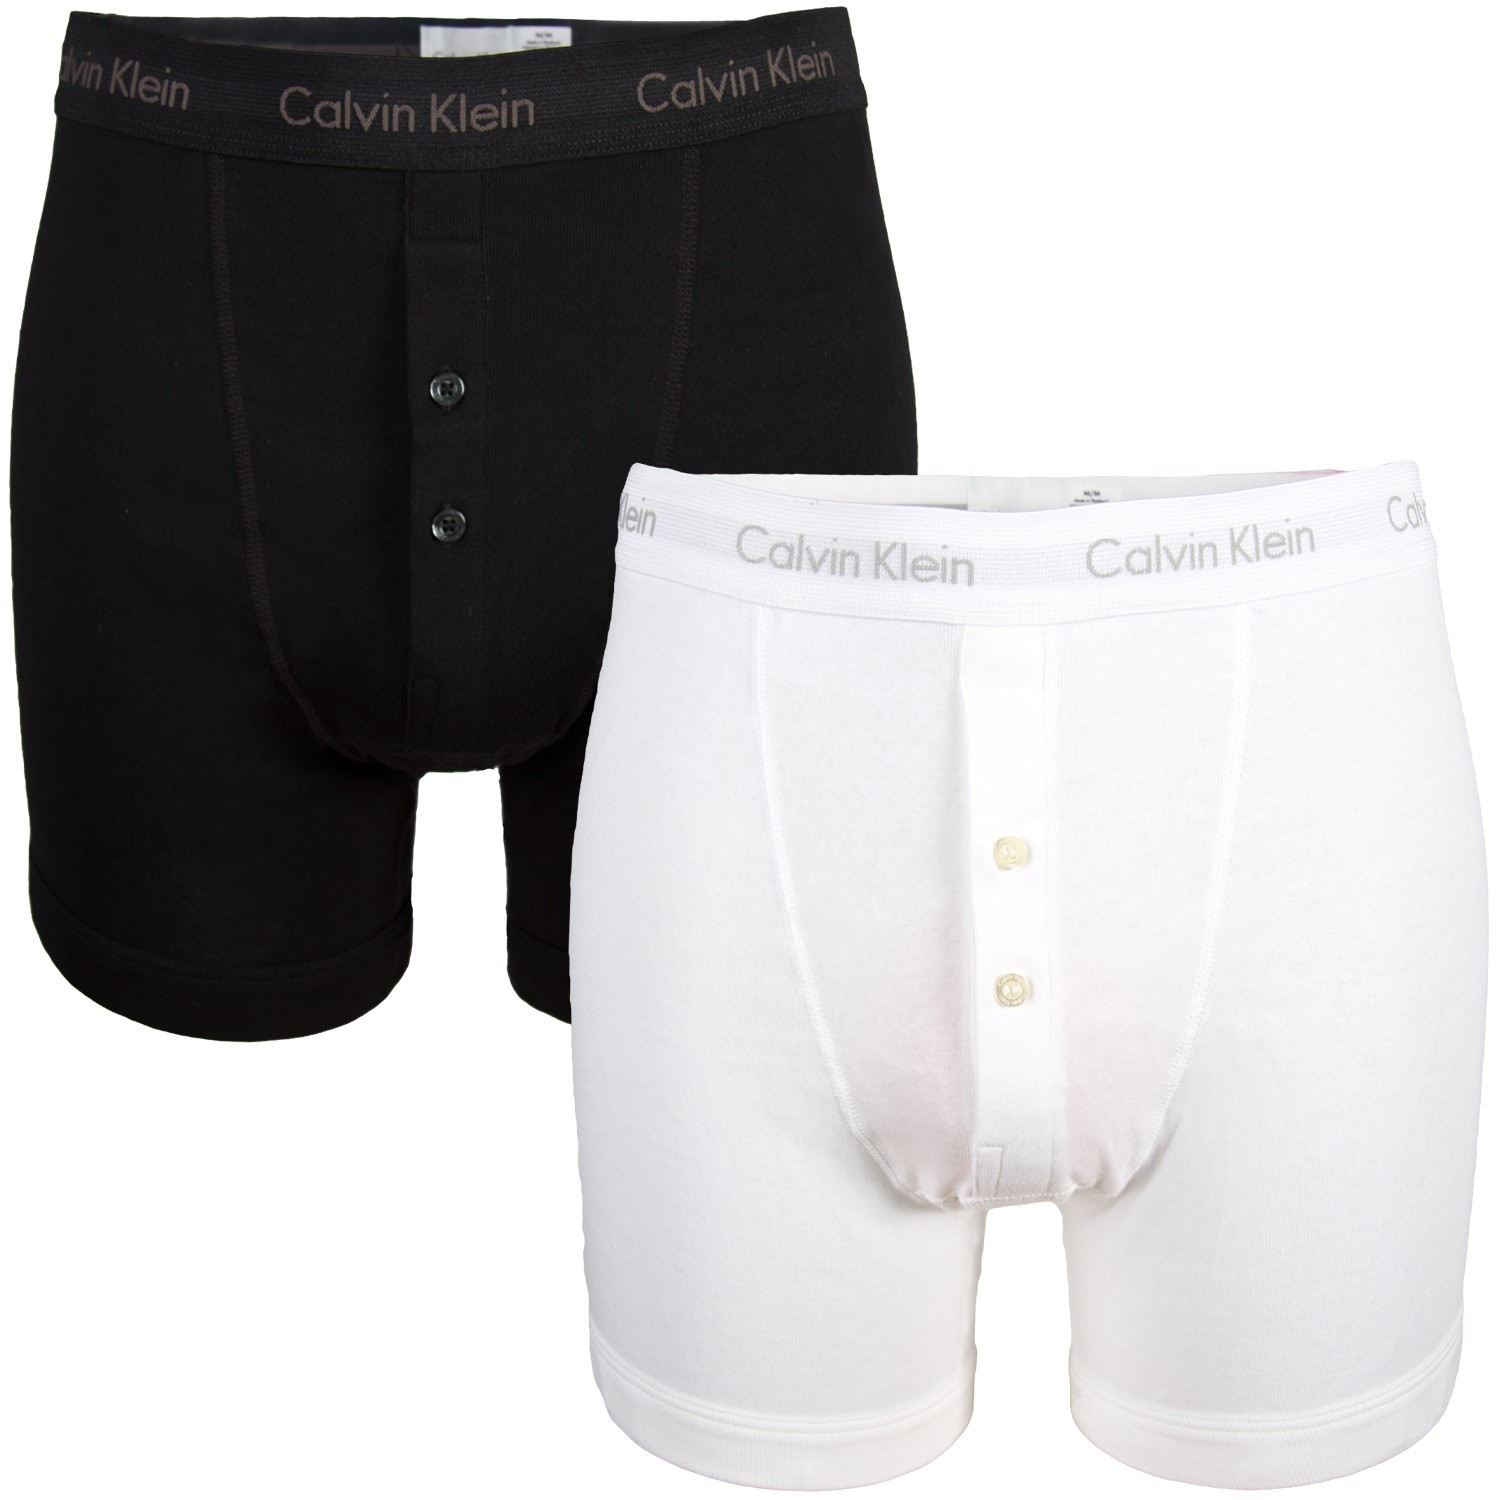 2 pack calvin klein button fly boxershorts boxer